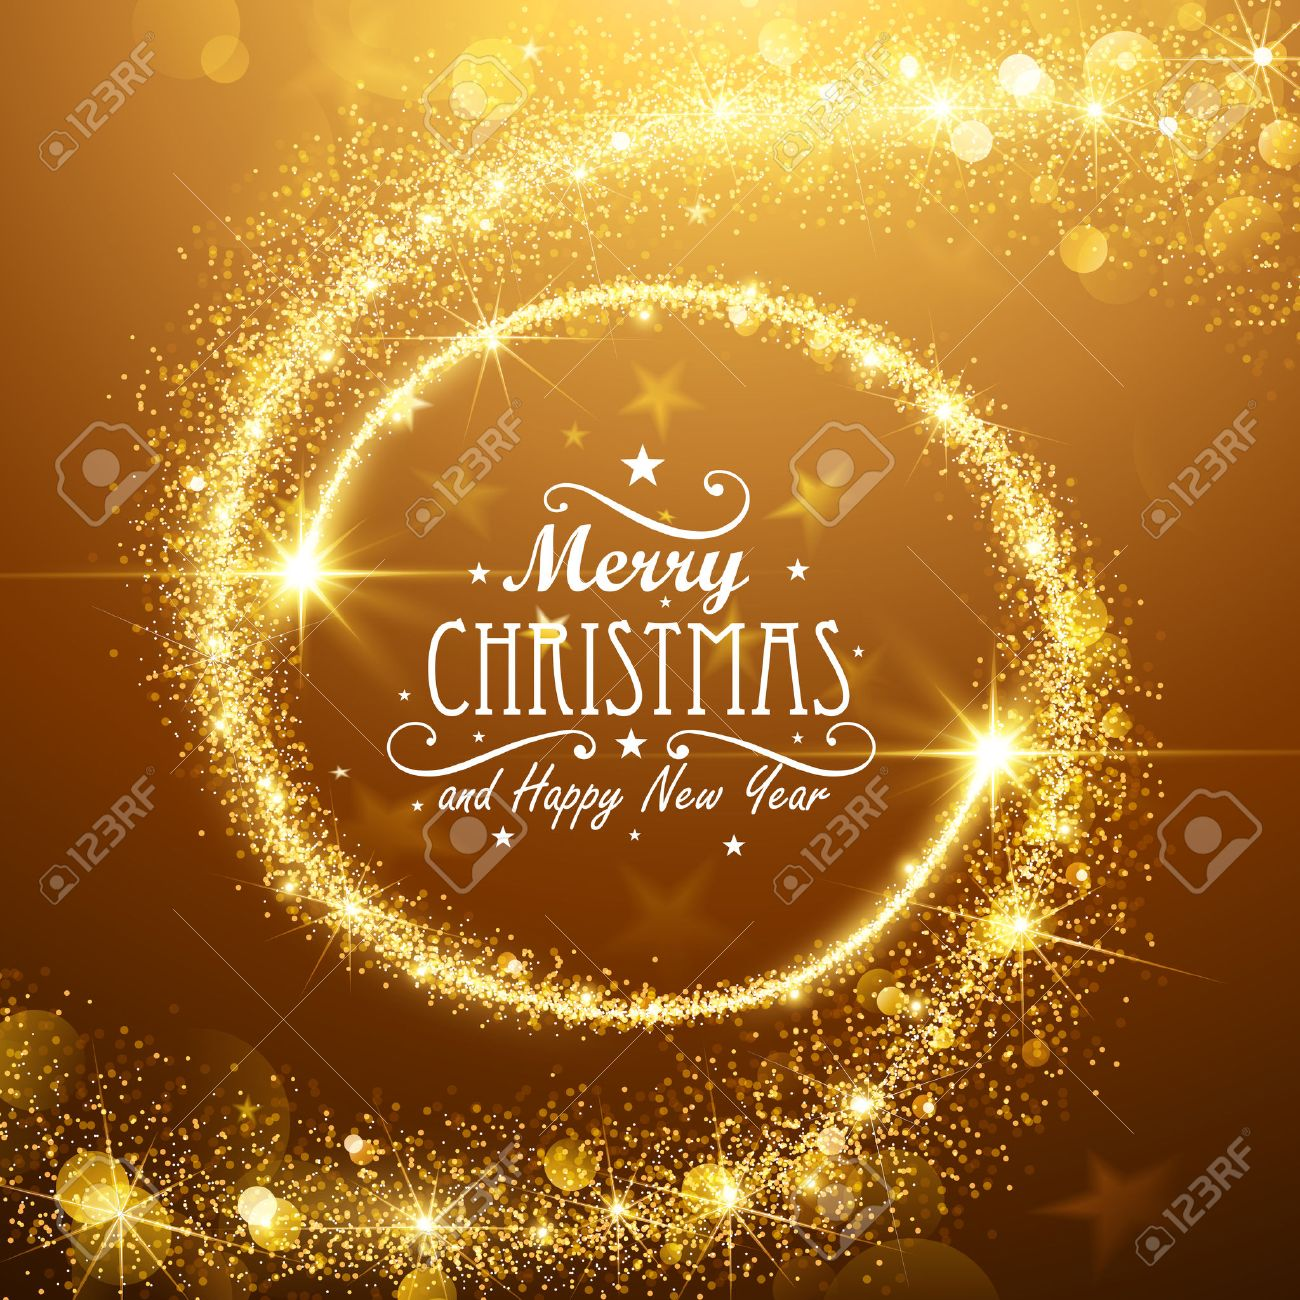 Christmas background with gold magic stars. Vector illustration Standard-Bild - 45597978